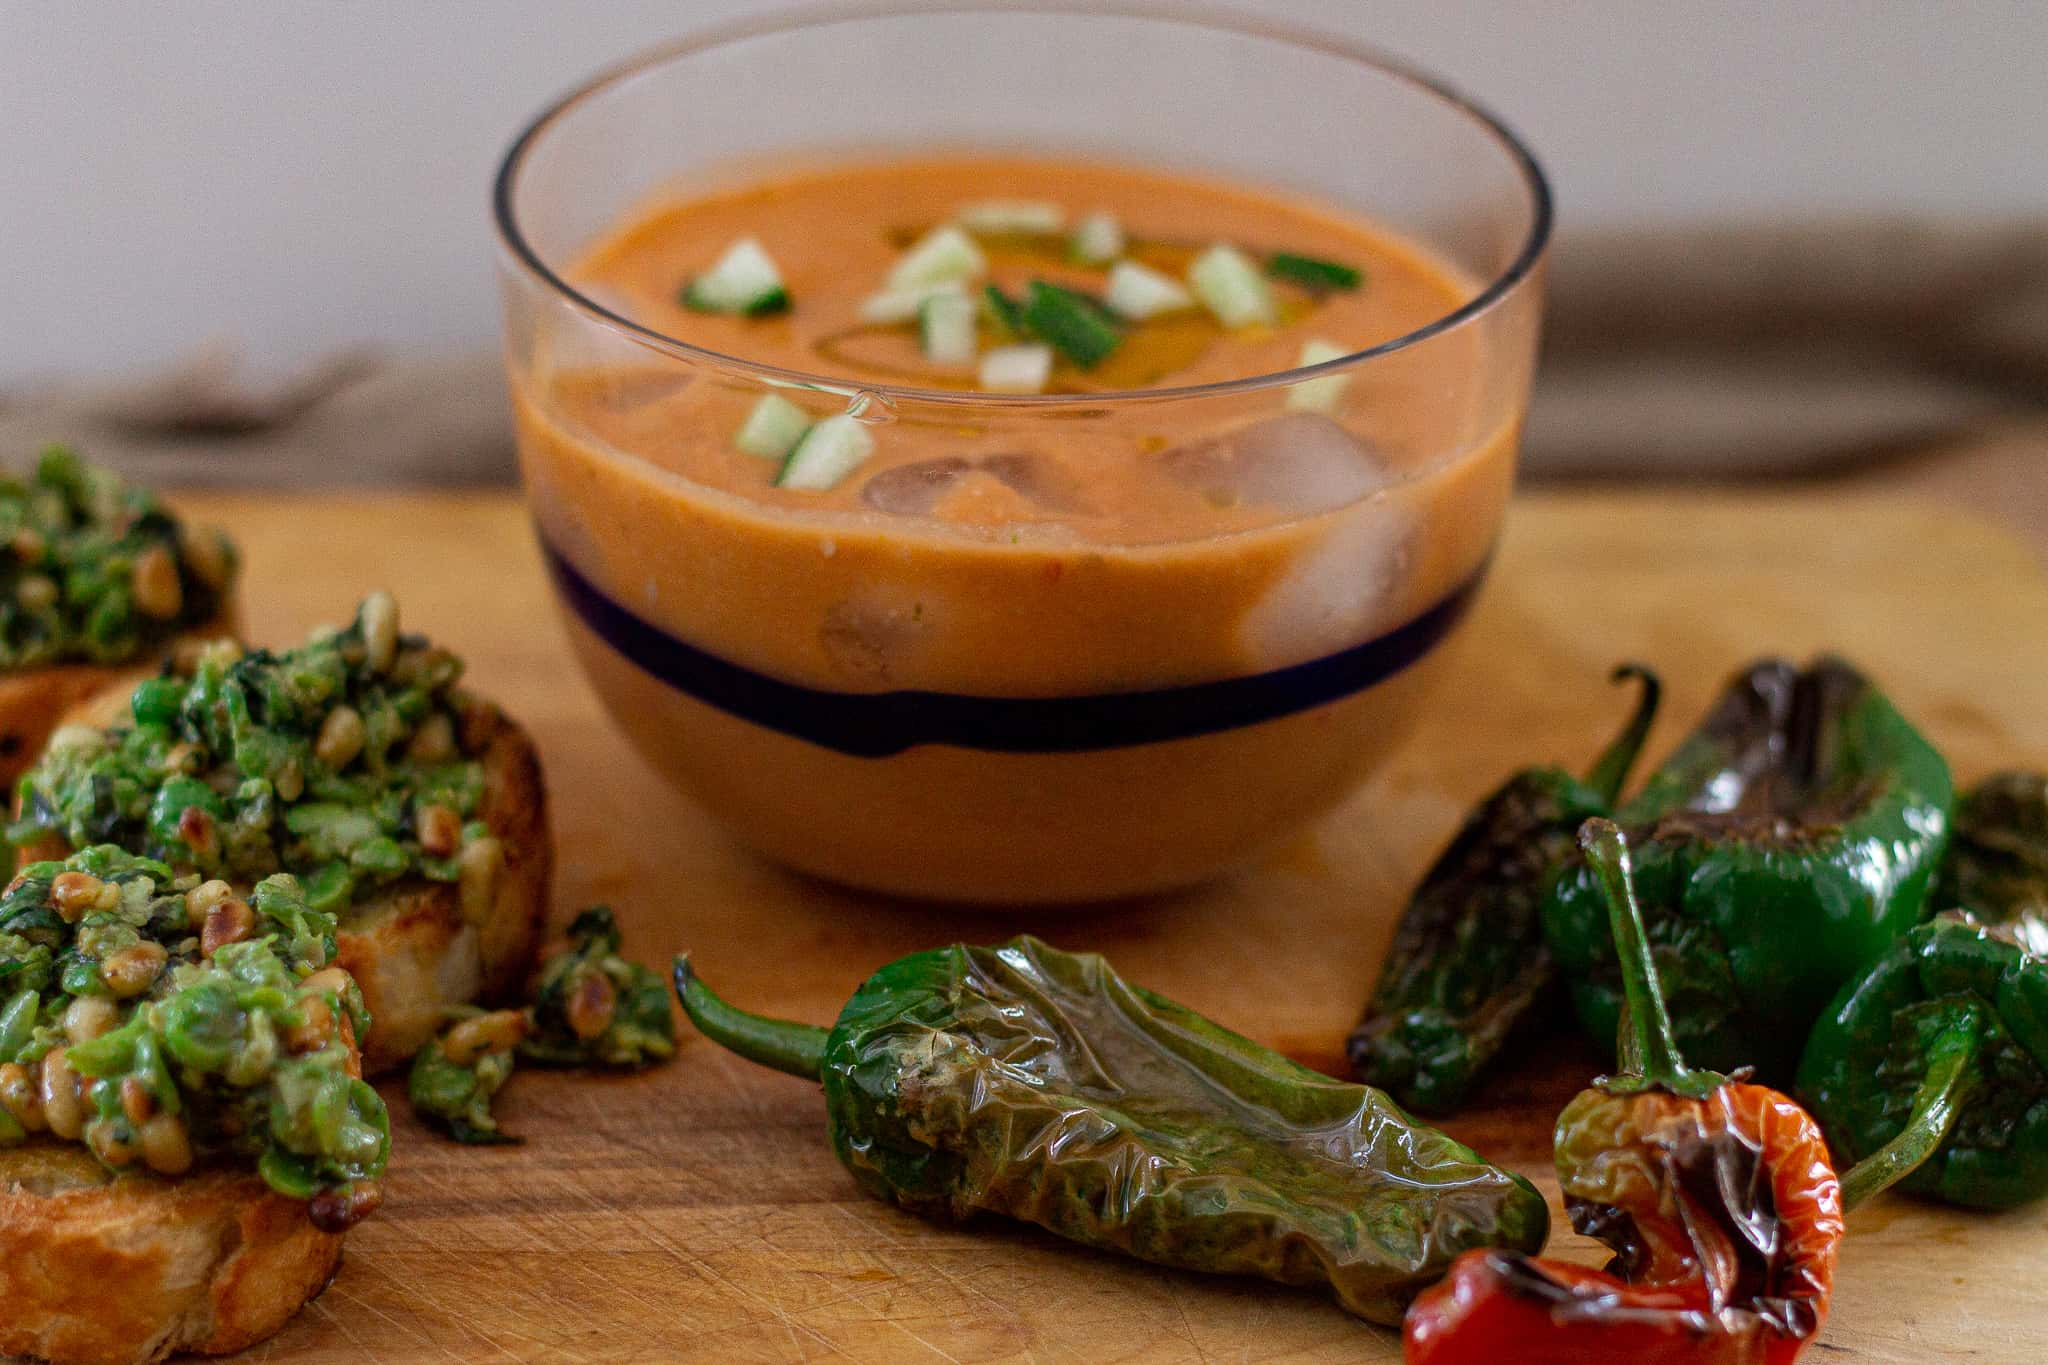 How to Make Easy Delicious Gazpacho Soup